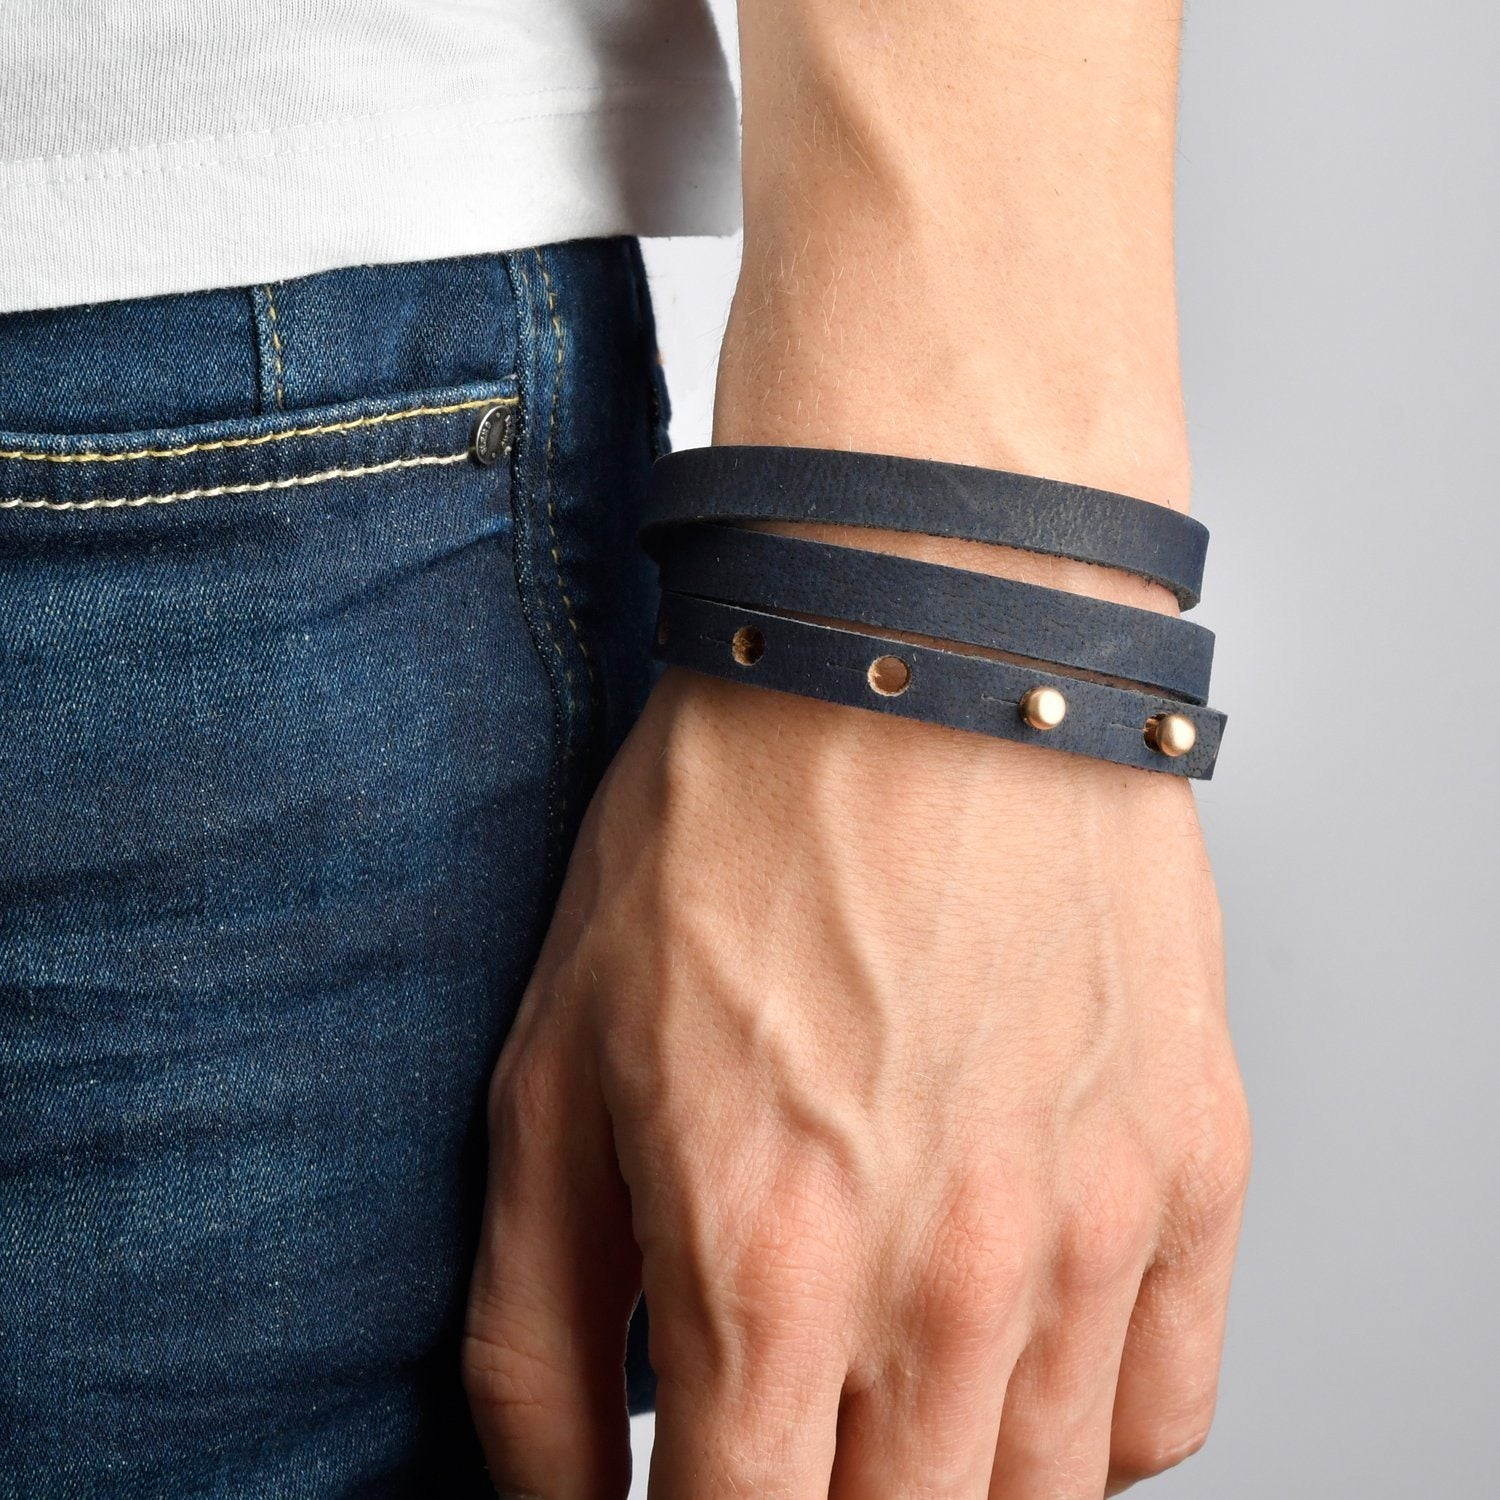 LA ROMANA Leather Mens Womens Cuff Bracelets Designer Wrap Wristbands Navy Blue Rose Gold | Fathom Bracelets